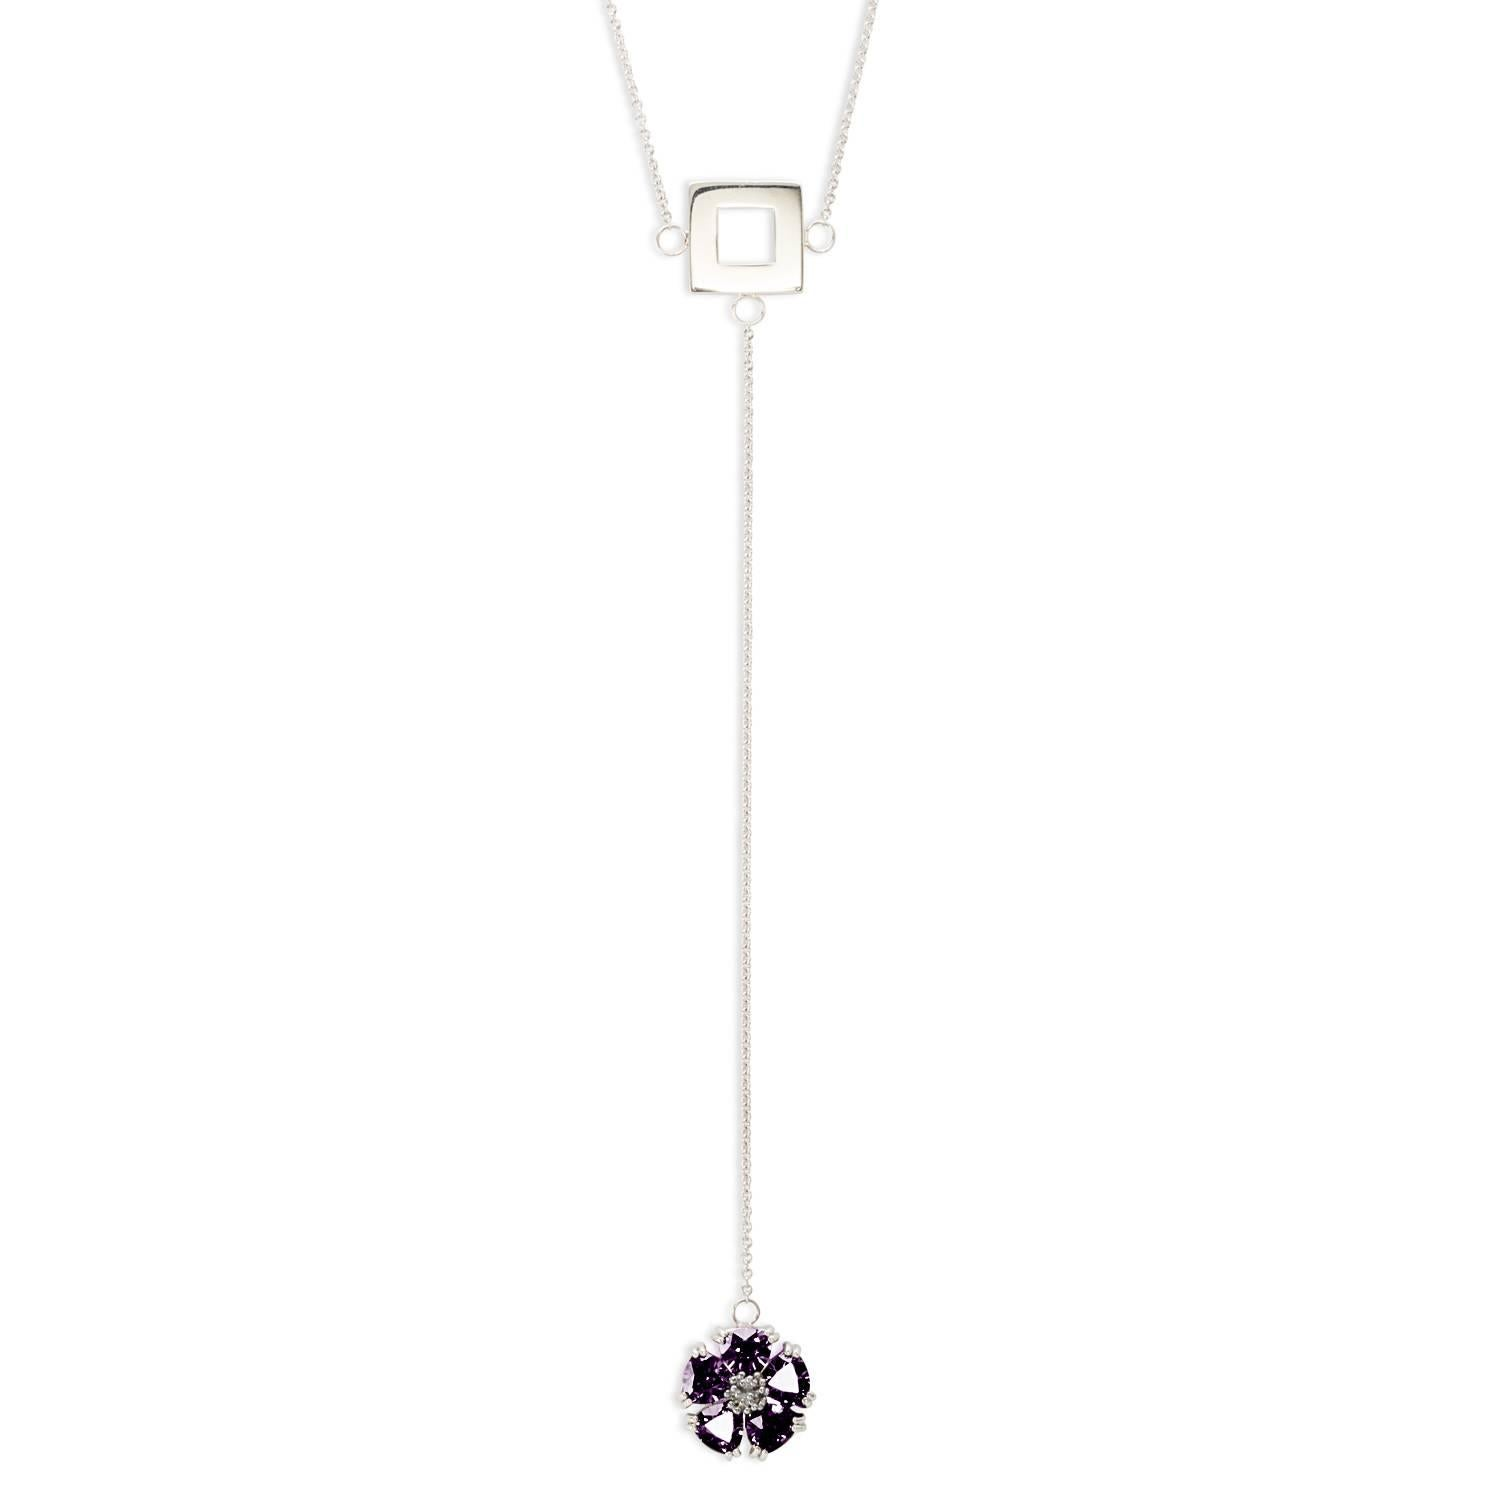 Amethyst Blossom Stone and Square Lariat Necklace